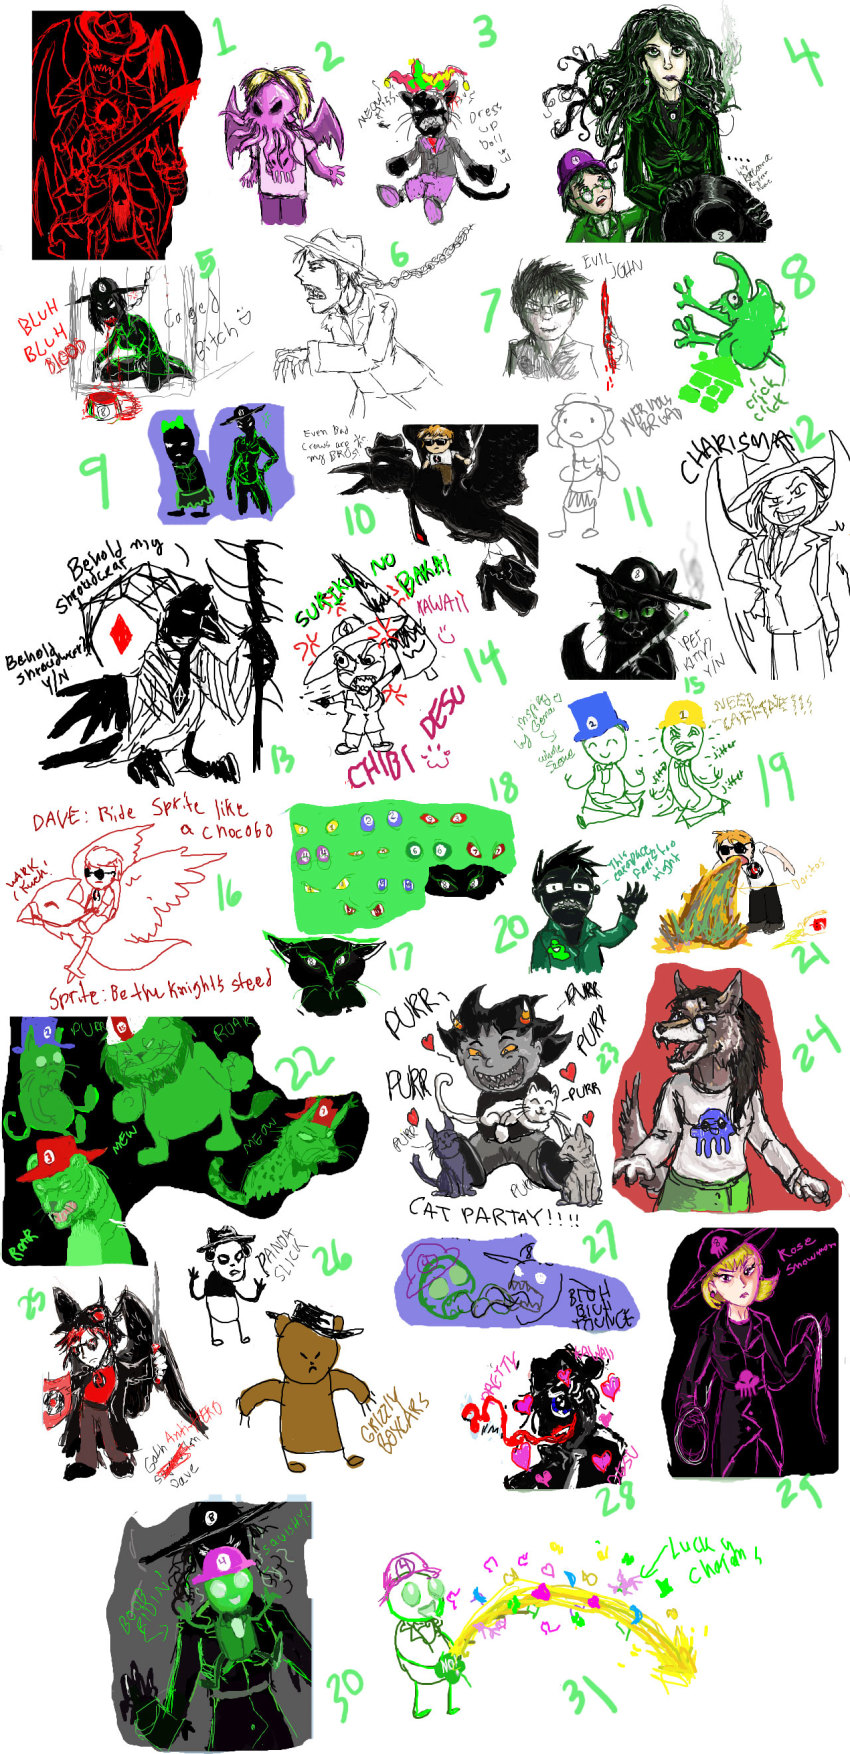 animalstuck apple_juice art_dump beta_kids blood bondage bq cans carapaced cats censor chibi cigarette_holder_lance clover cosplay crowbar dave_strider diamonds_droog die doze fanoffspring felt fin final_fantasy fpreg heart huge_wish humanized itchy jack_noir jade_harley john_egbert katana knife mauve_squiddle_shirt nervous_broad no_hat ohgodwhat problem_sleuth problem_sleuth_(adventure) psychojohn rose_lalonde sawbuck sburb_logo seerofnight seppucrow sepulchritude shipping smiling_karkat smoking smuppets snowman spades_slick stitch trace vomit whip wise_guy_slime_suit